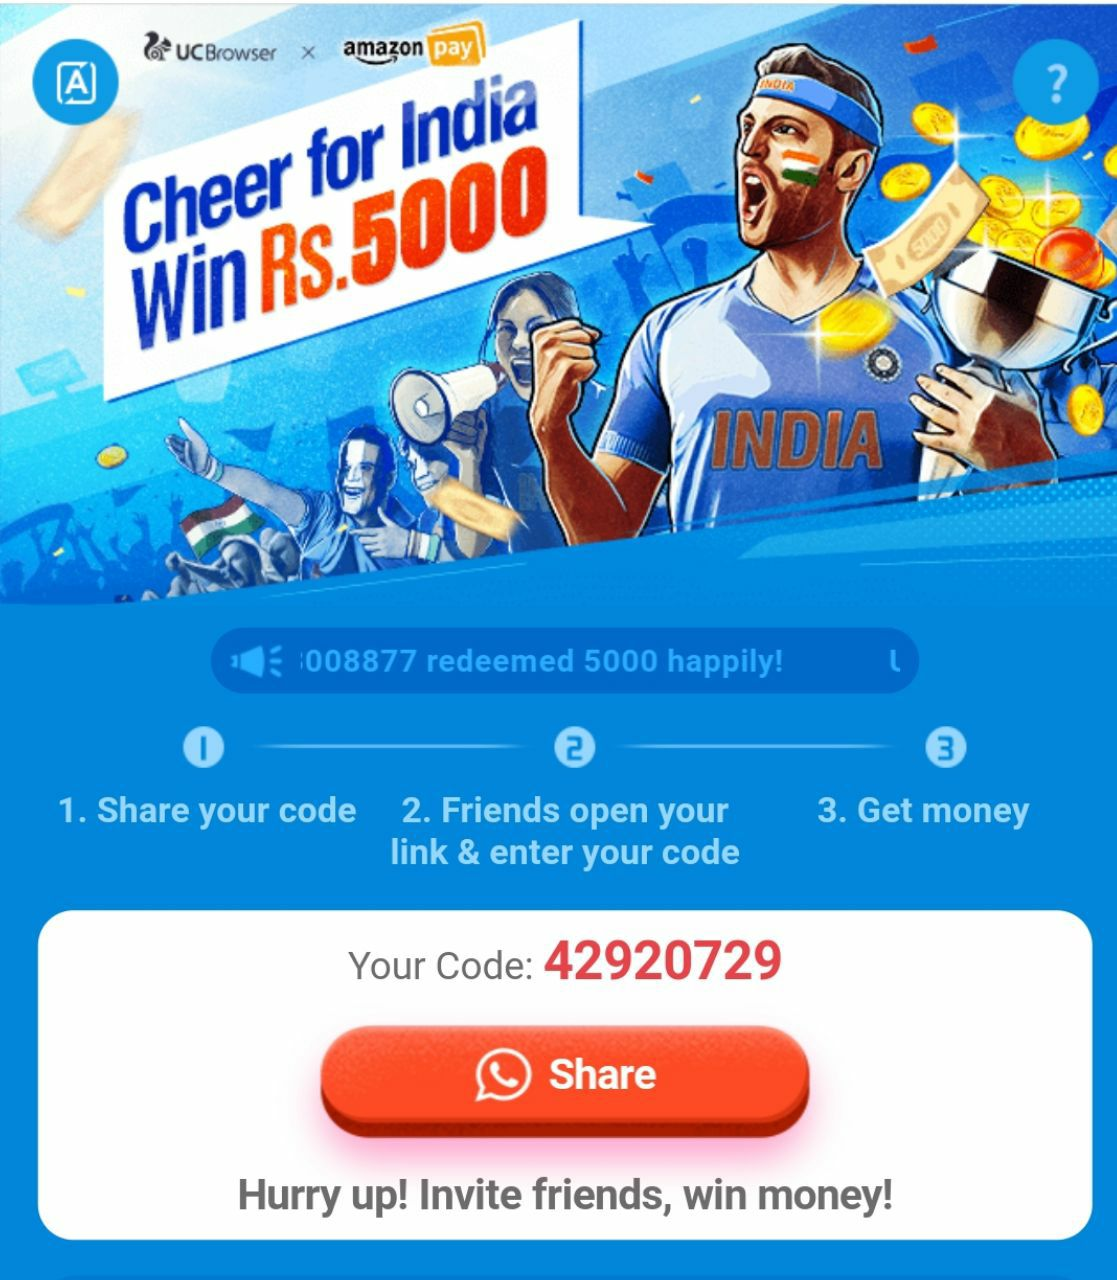 Last Days) UC Browser ₹5000 Loot - Get Free ₹100 Recharge